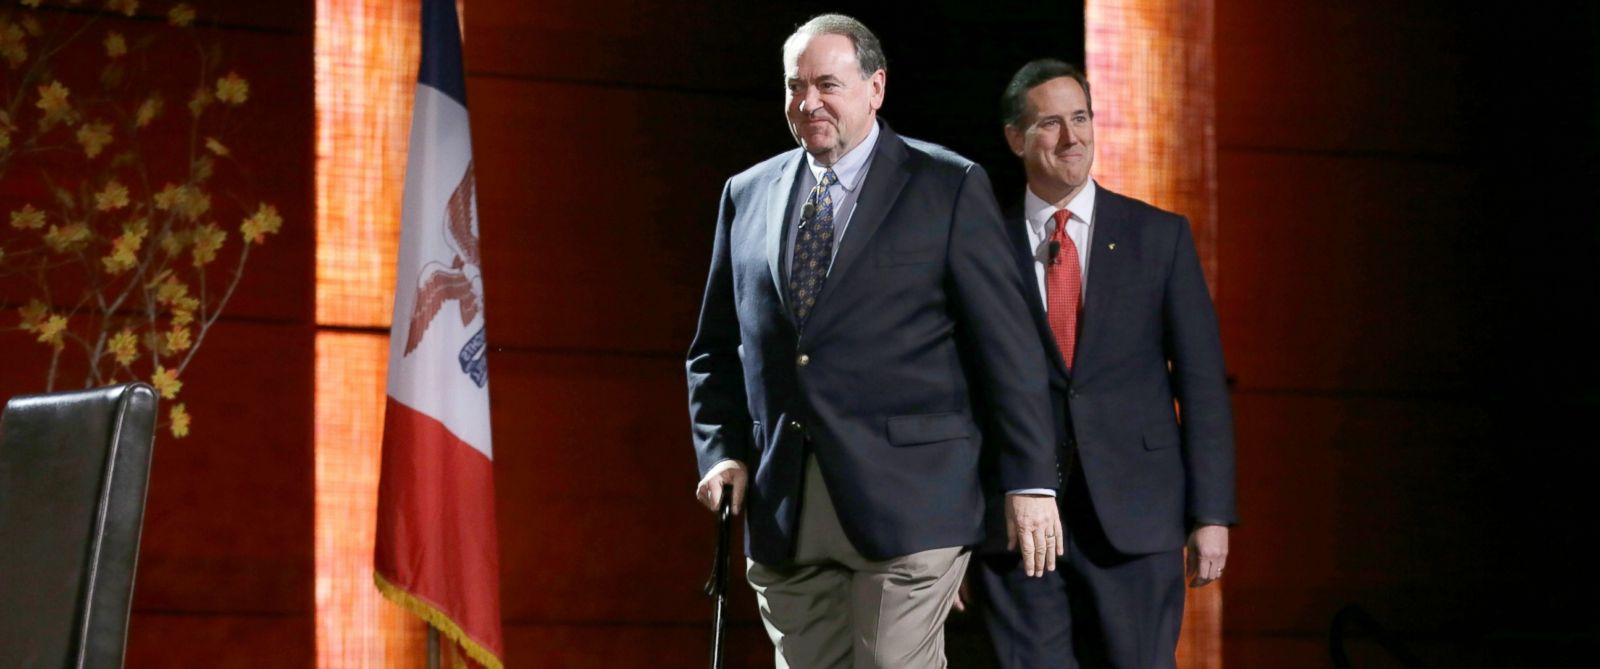 PHOTO: Republican presidential candidates former Arkansas Gov. Mike Huckabee and former Pennsylvania Sen. Rick Santorum, right, walk on the stage at the start of the Presidential Family Forum, Nov. 20, 2015, in Des Moines, Iowa.